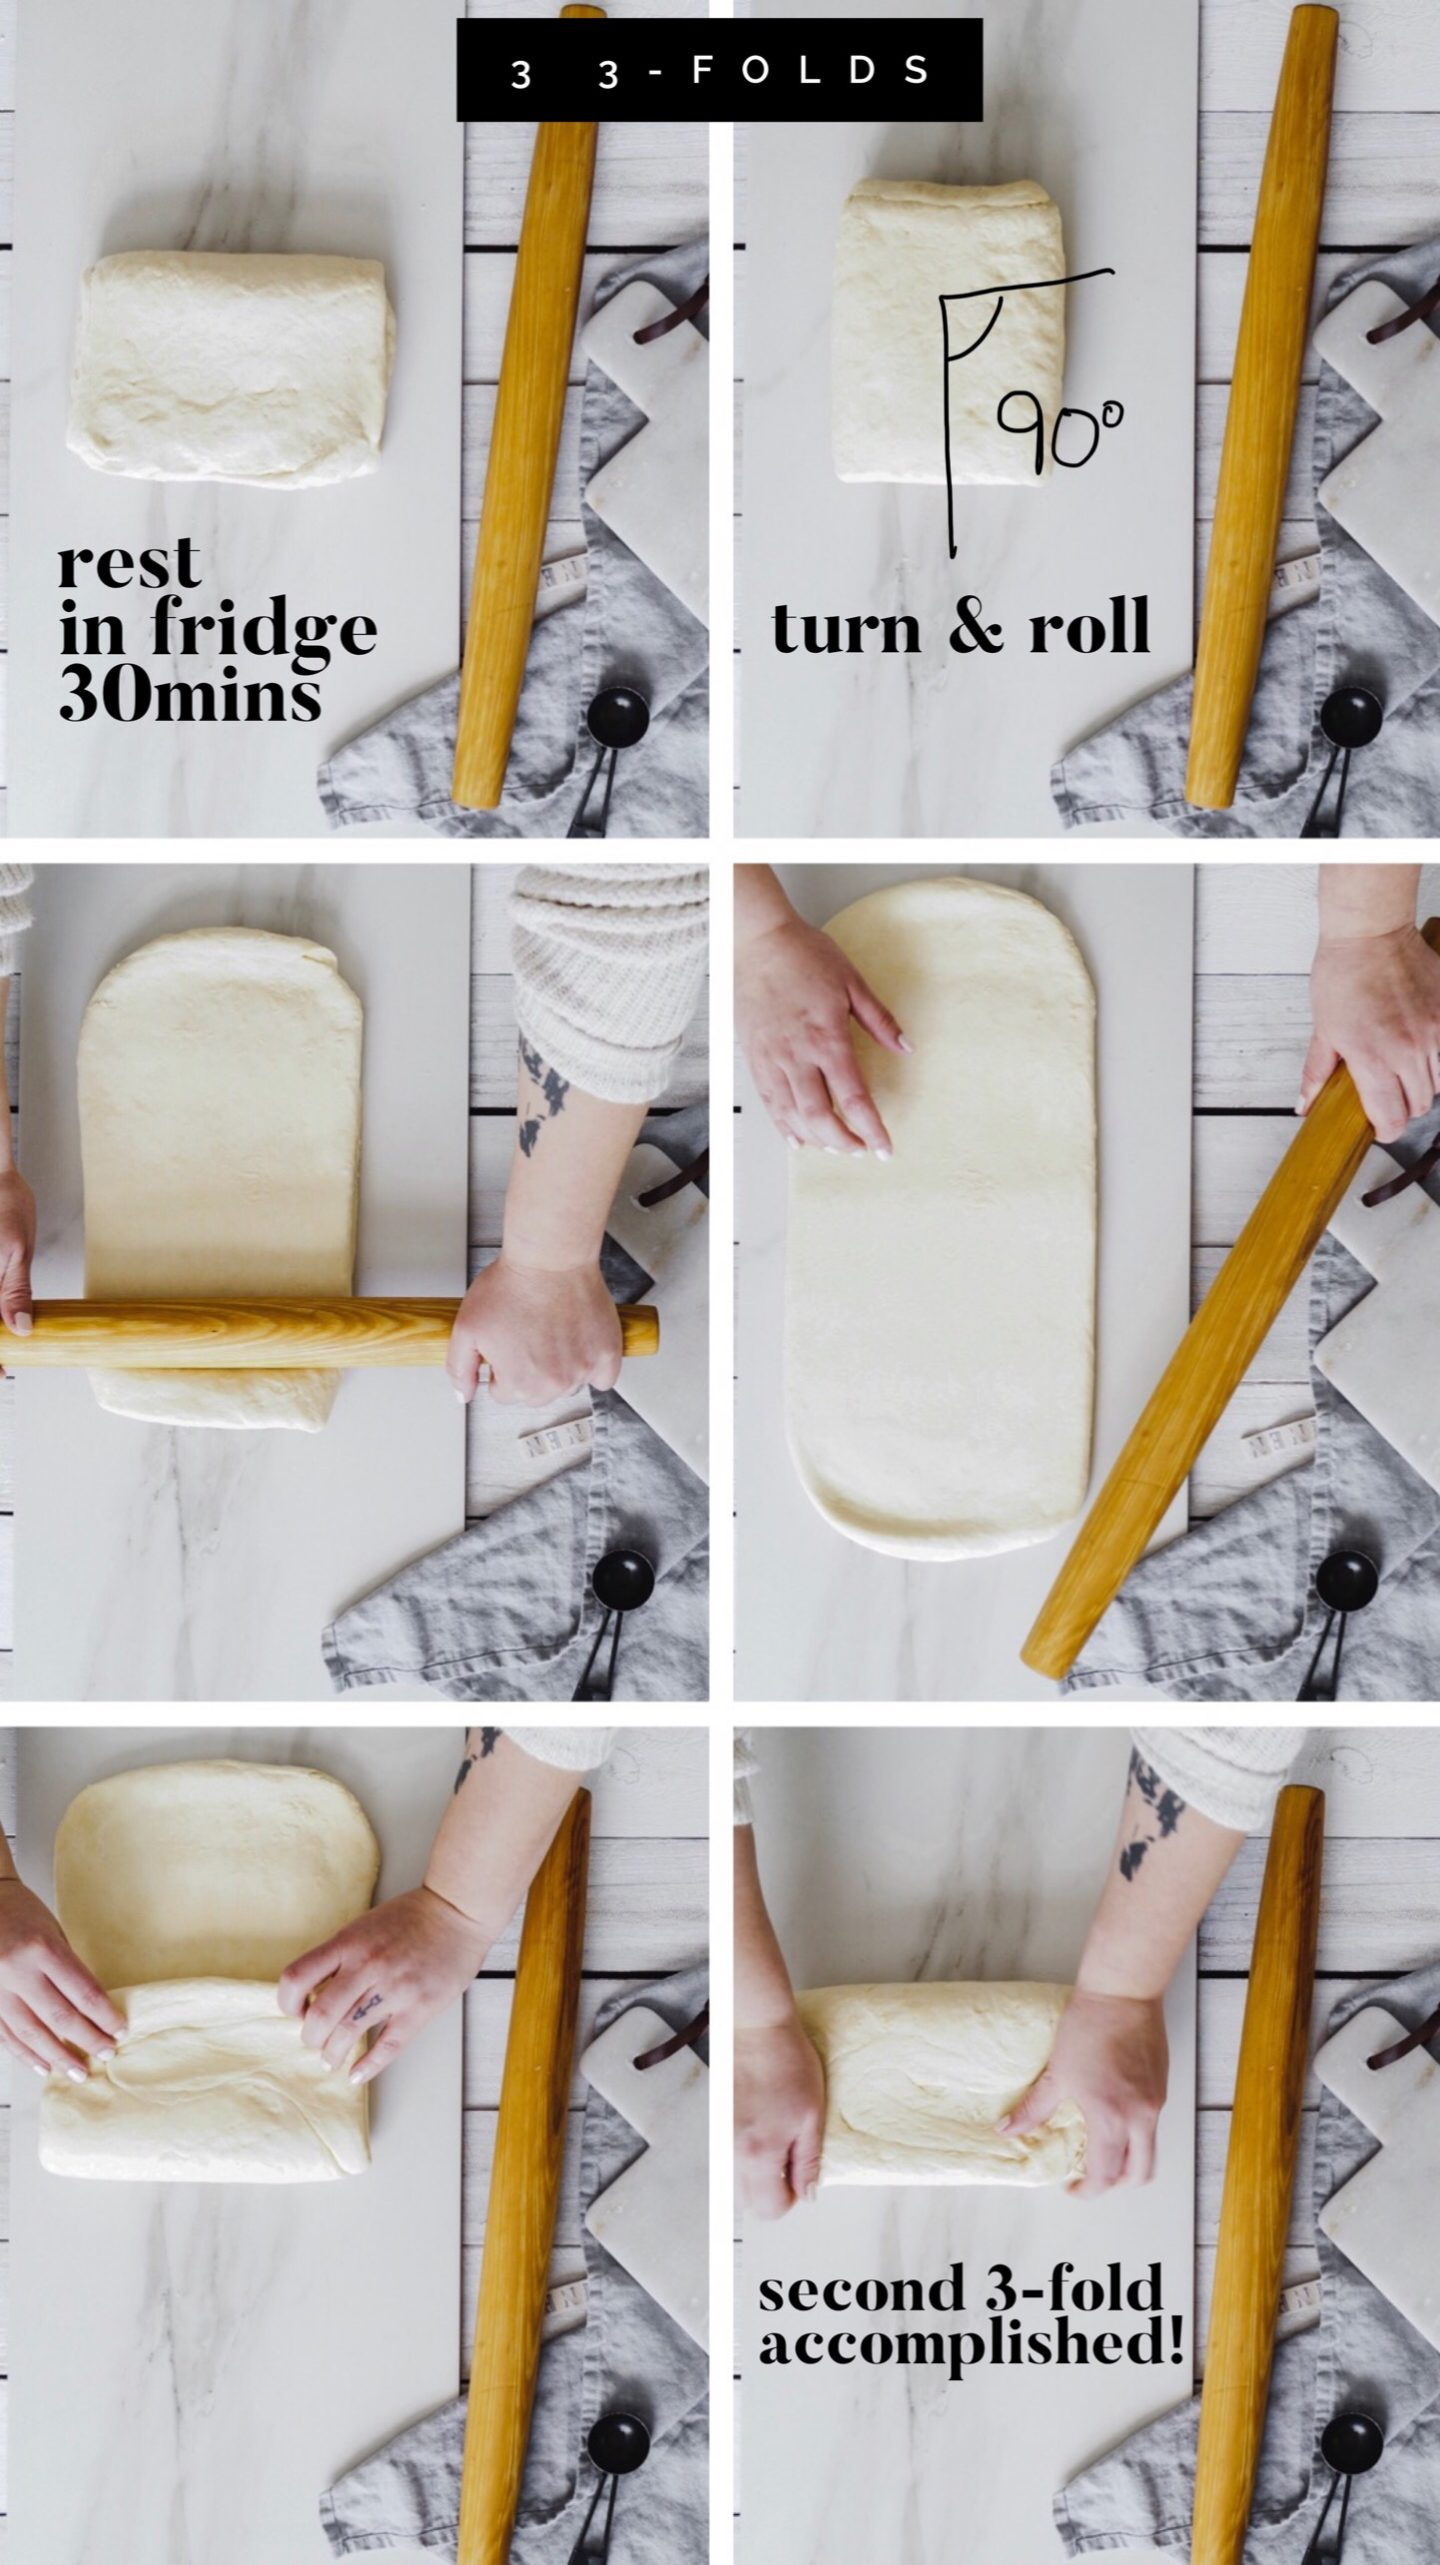 how to make homemade puff pastry, rough puff, croissants, and danish pastry. Learning the techniques of rolled in dough.